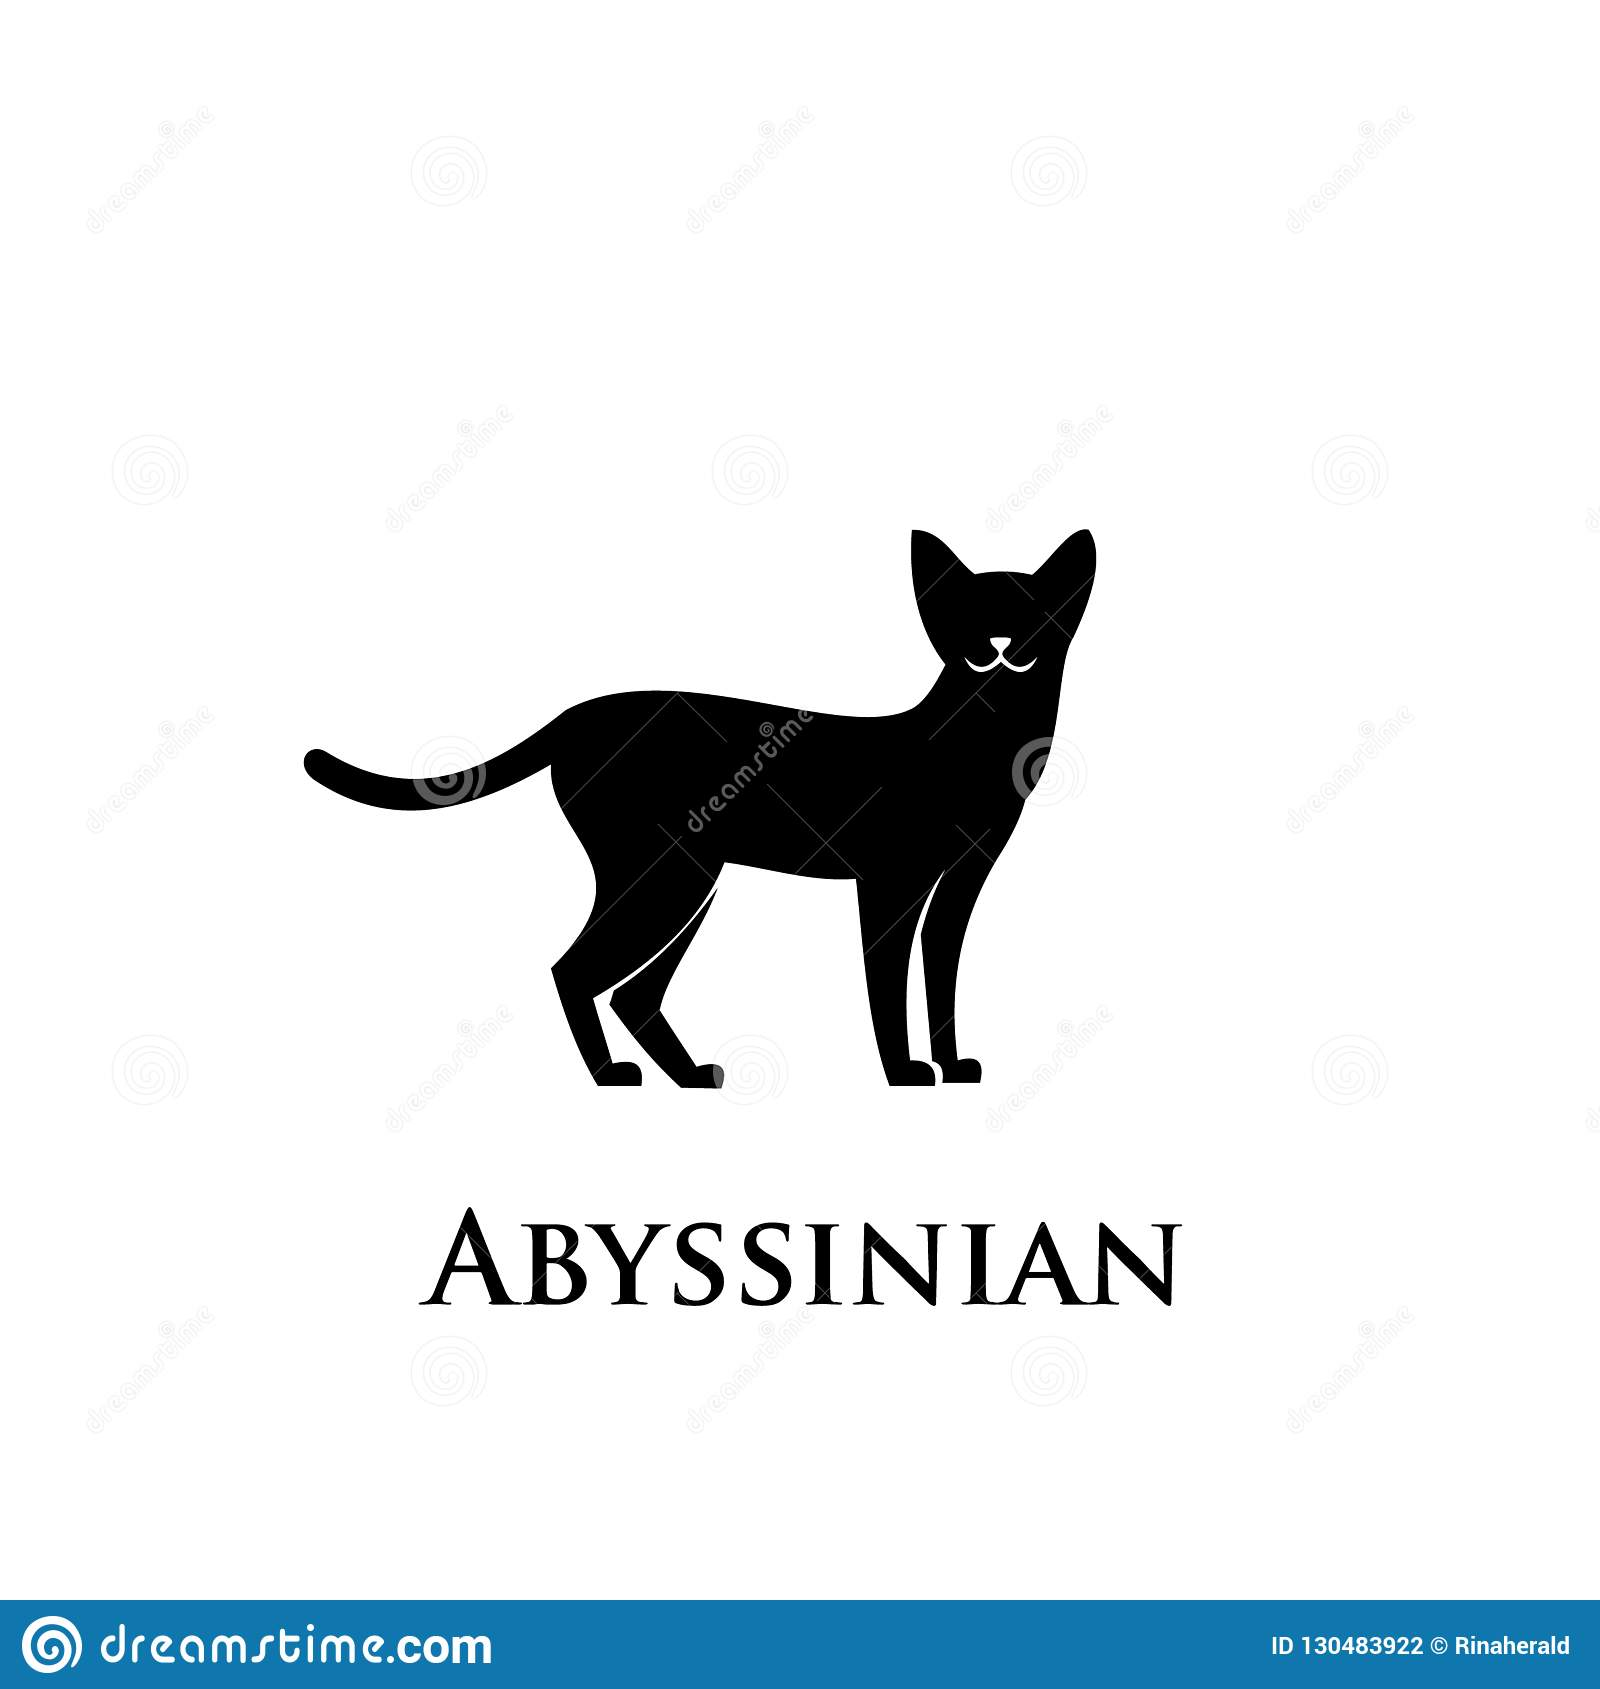 Abyssinian Cat Black And White